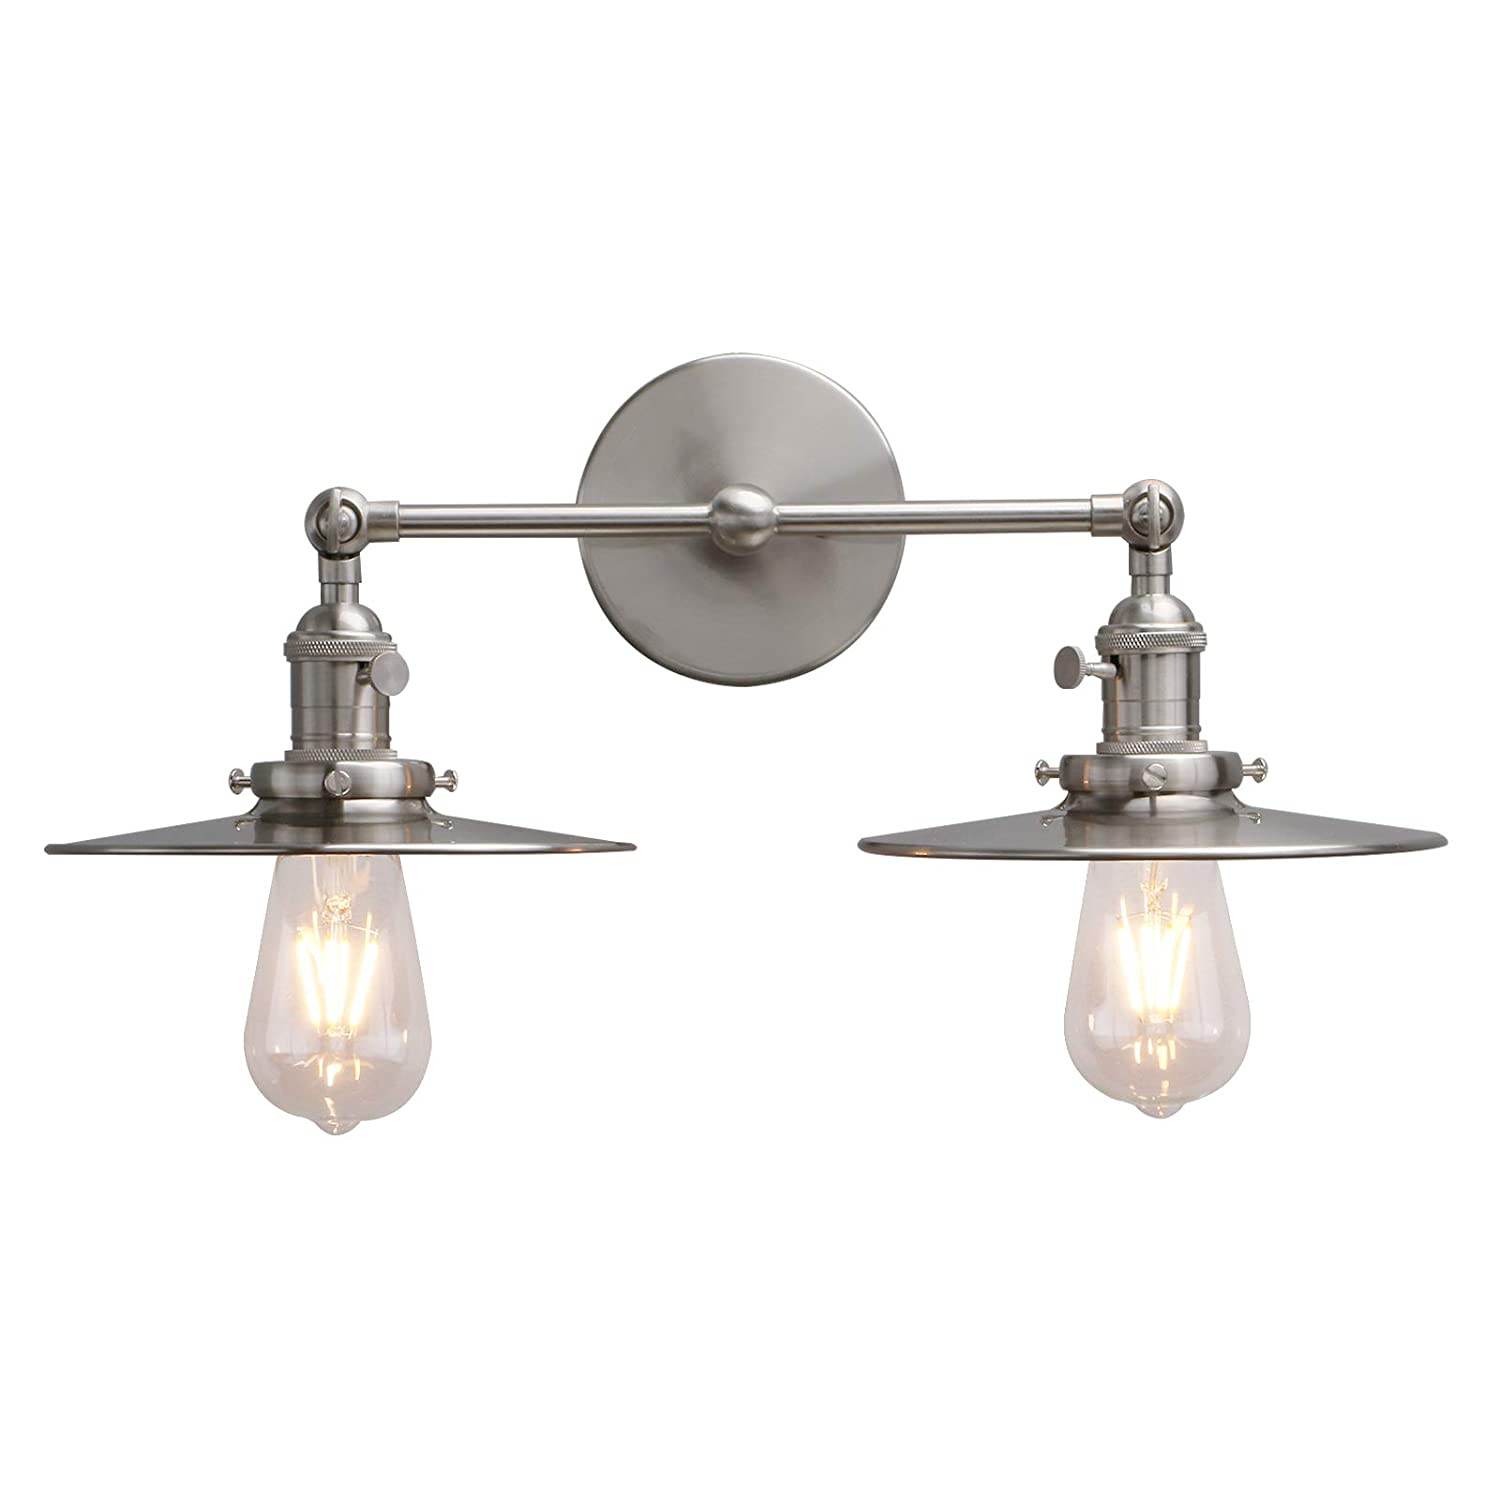 Phansthy dual light wall light doulbe wall sconce lighting with switch and 7 87 flat metal canopy brushed nickel finished brushed